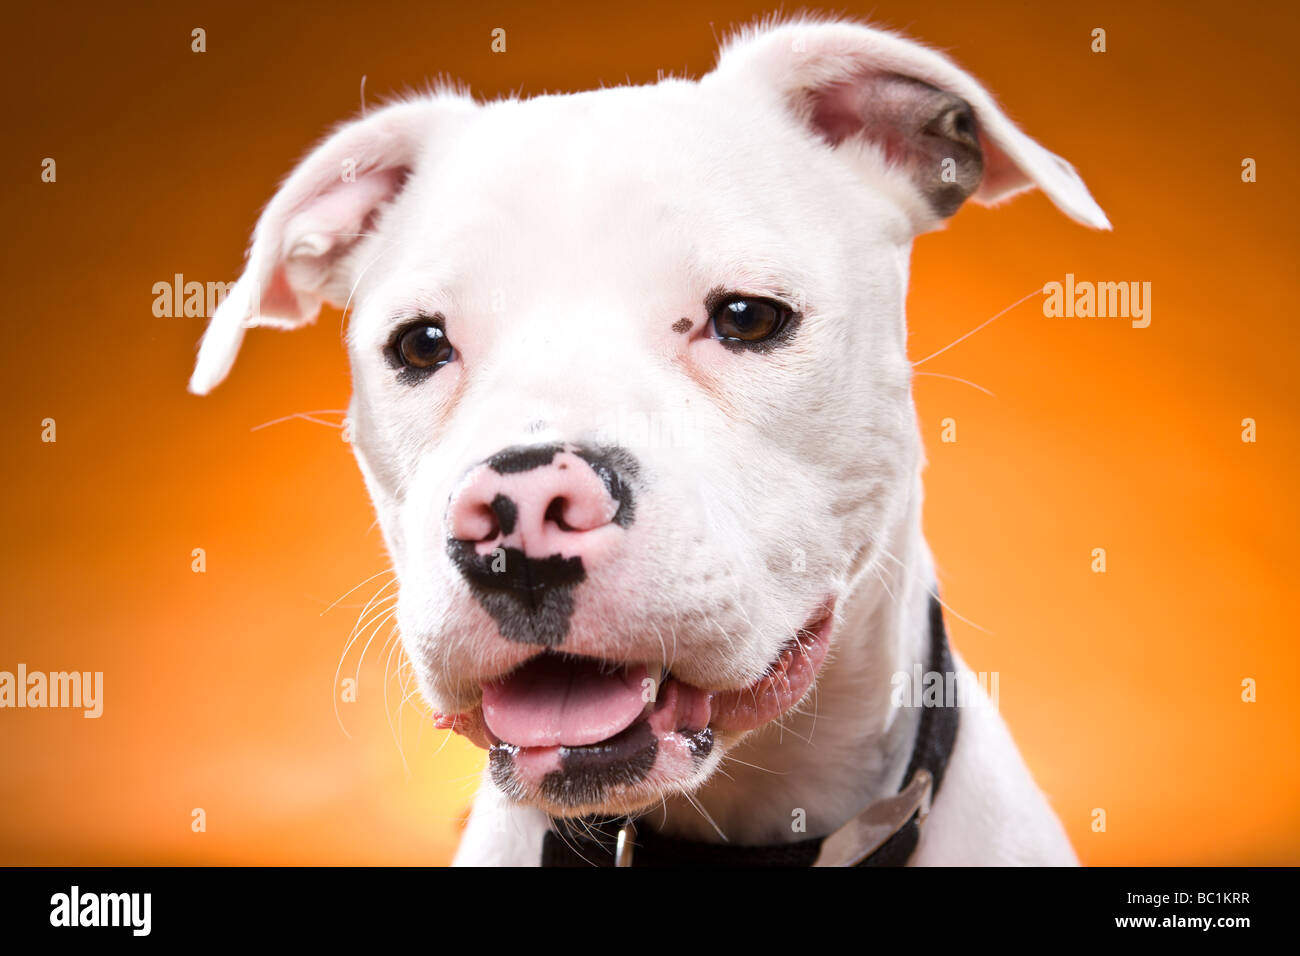 A Staffordshire Bull Terrier in the studio against a blue green background. - Stock Image